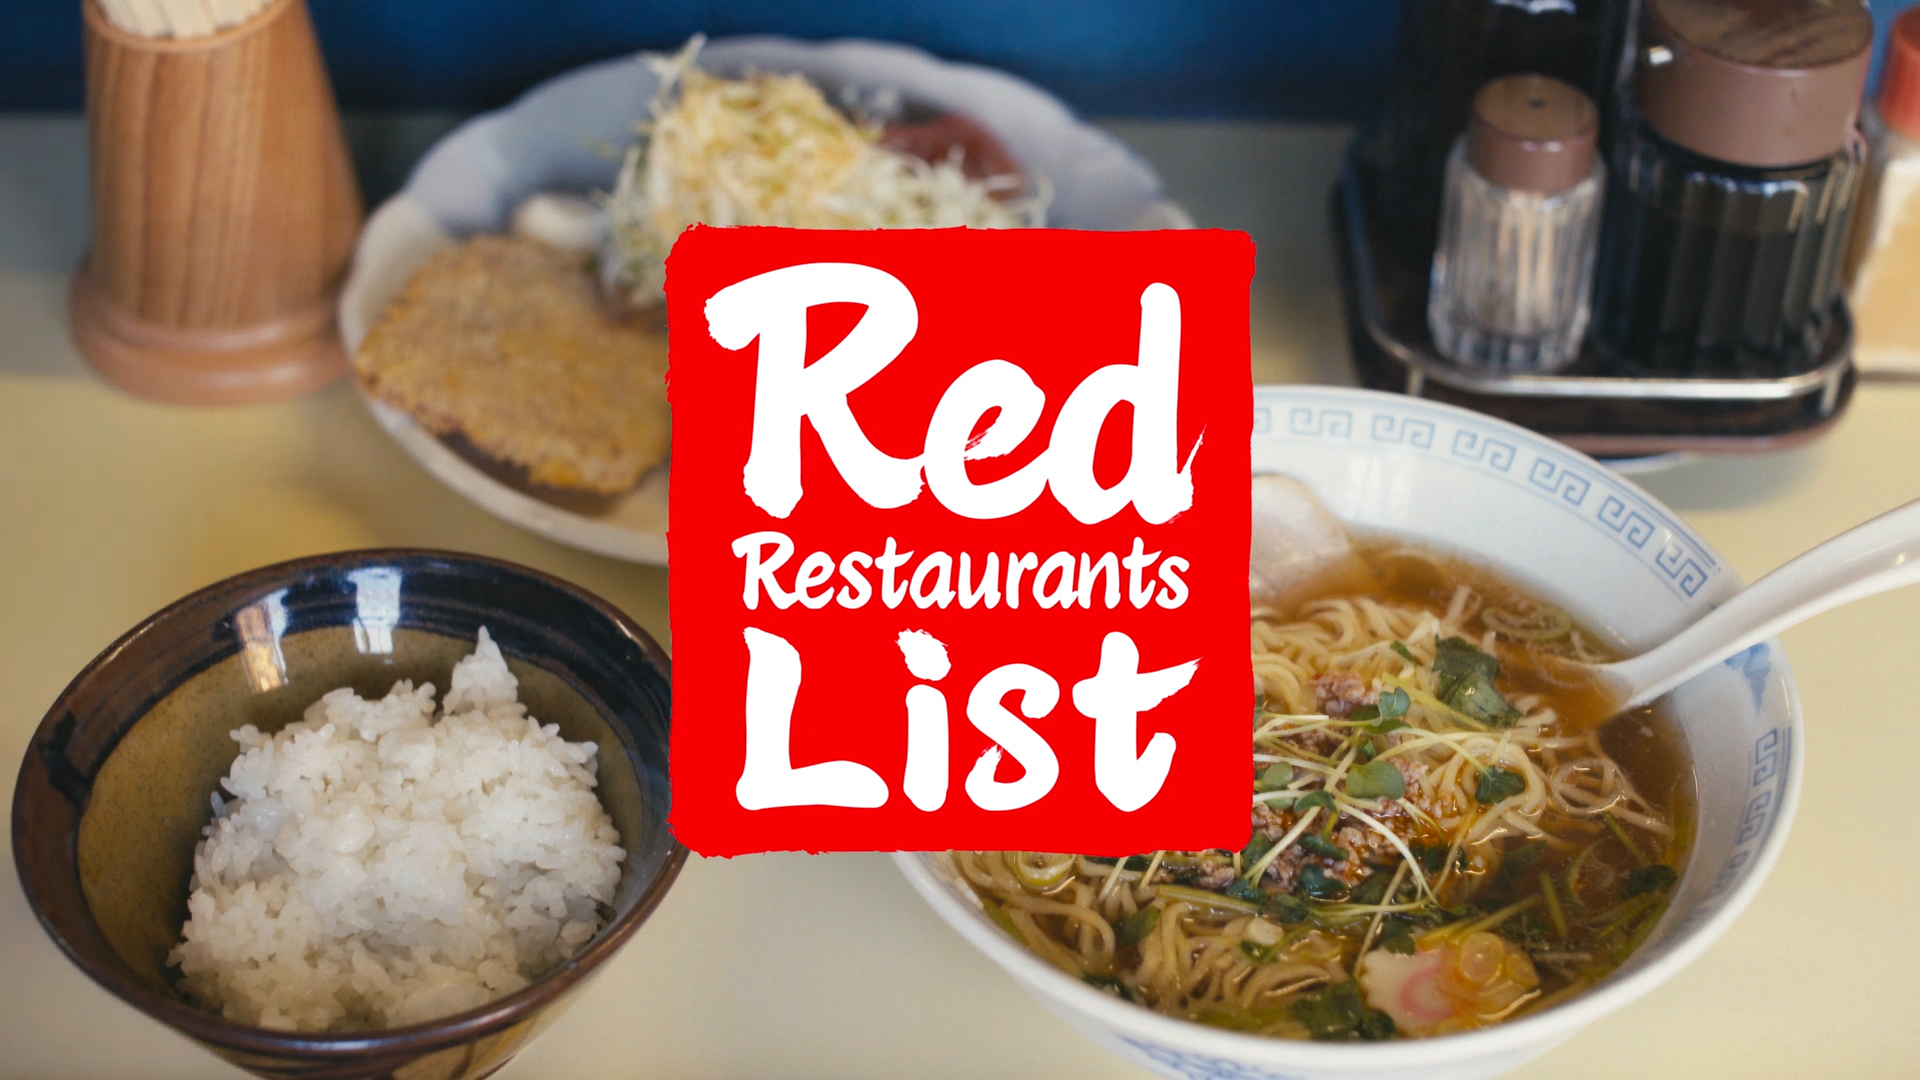 The Red Restaurants List: Local food simply too good to lose